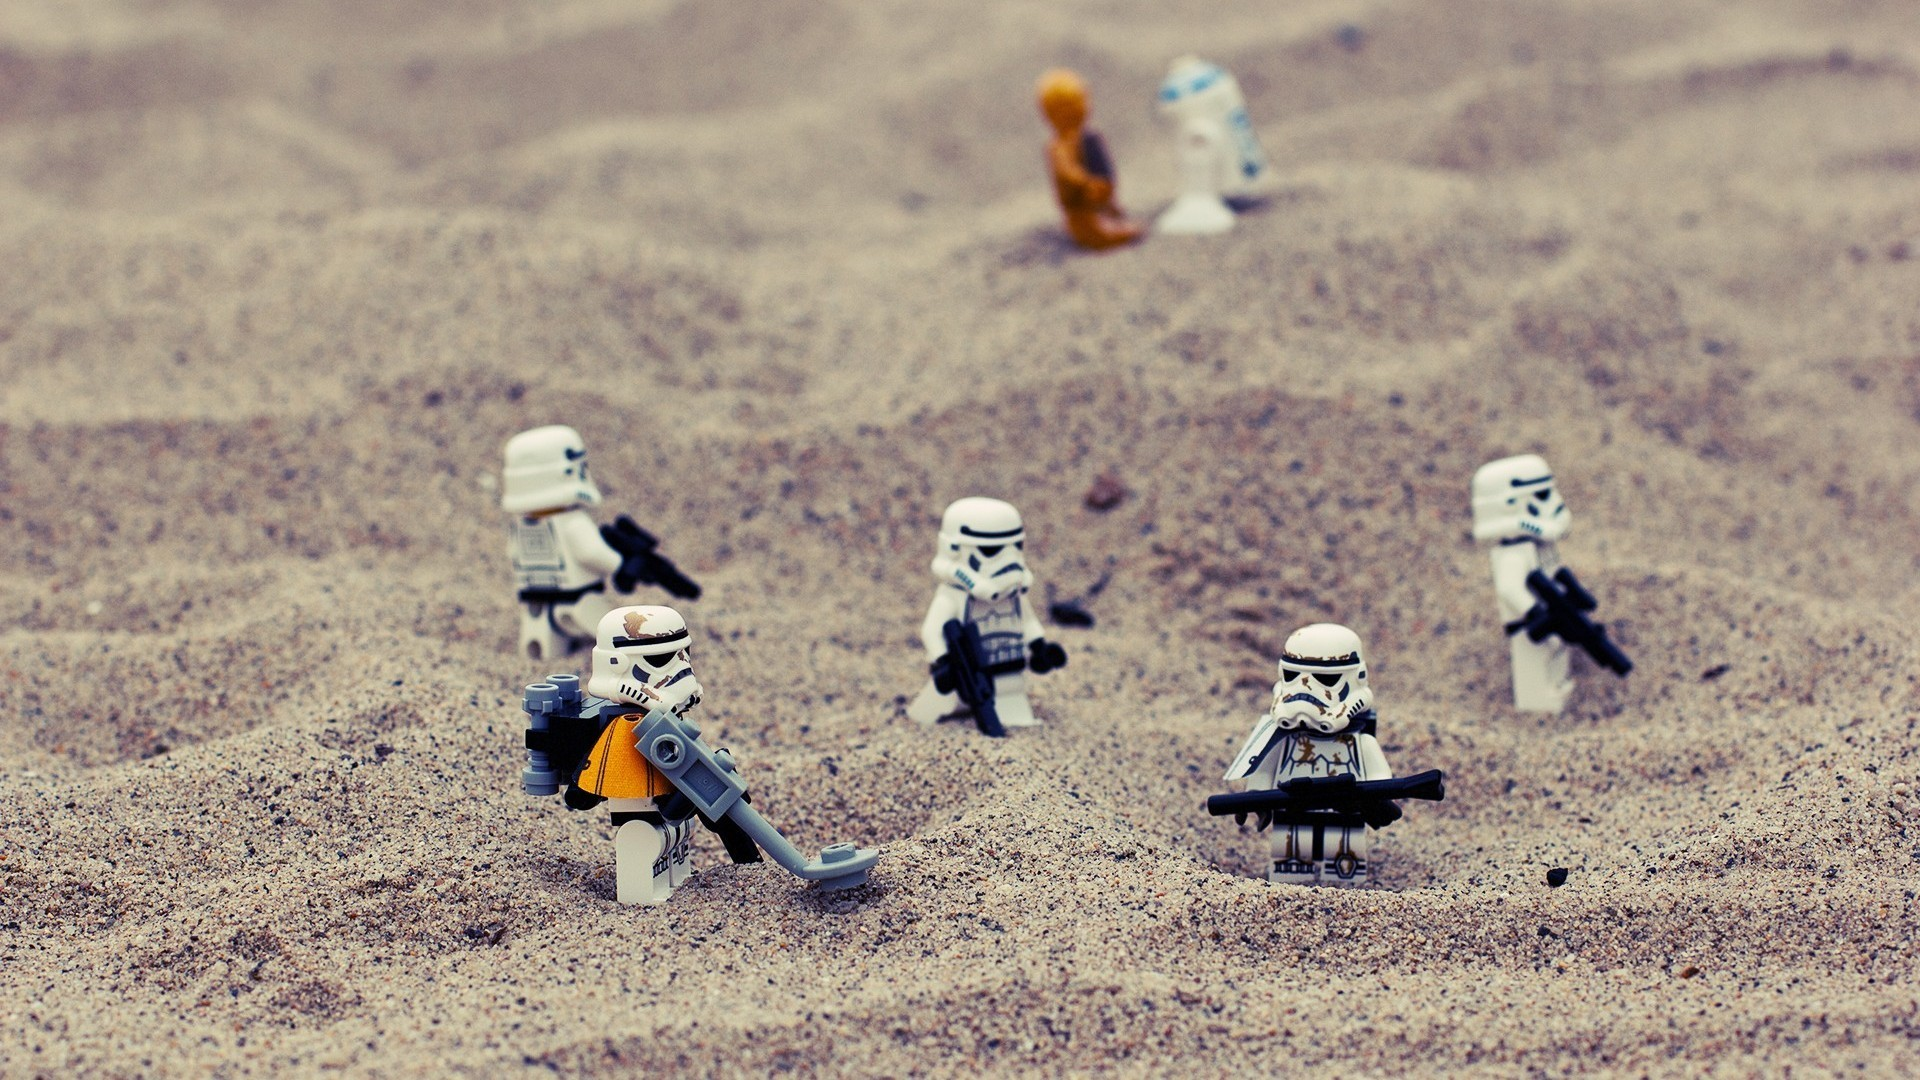 lego star wars wallpaper hd wallpapers hd Car Pictures